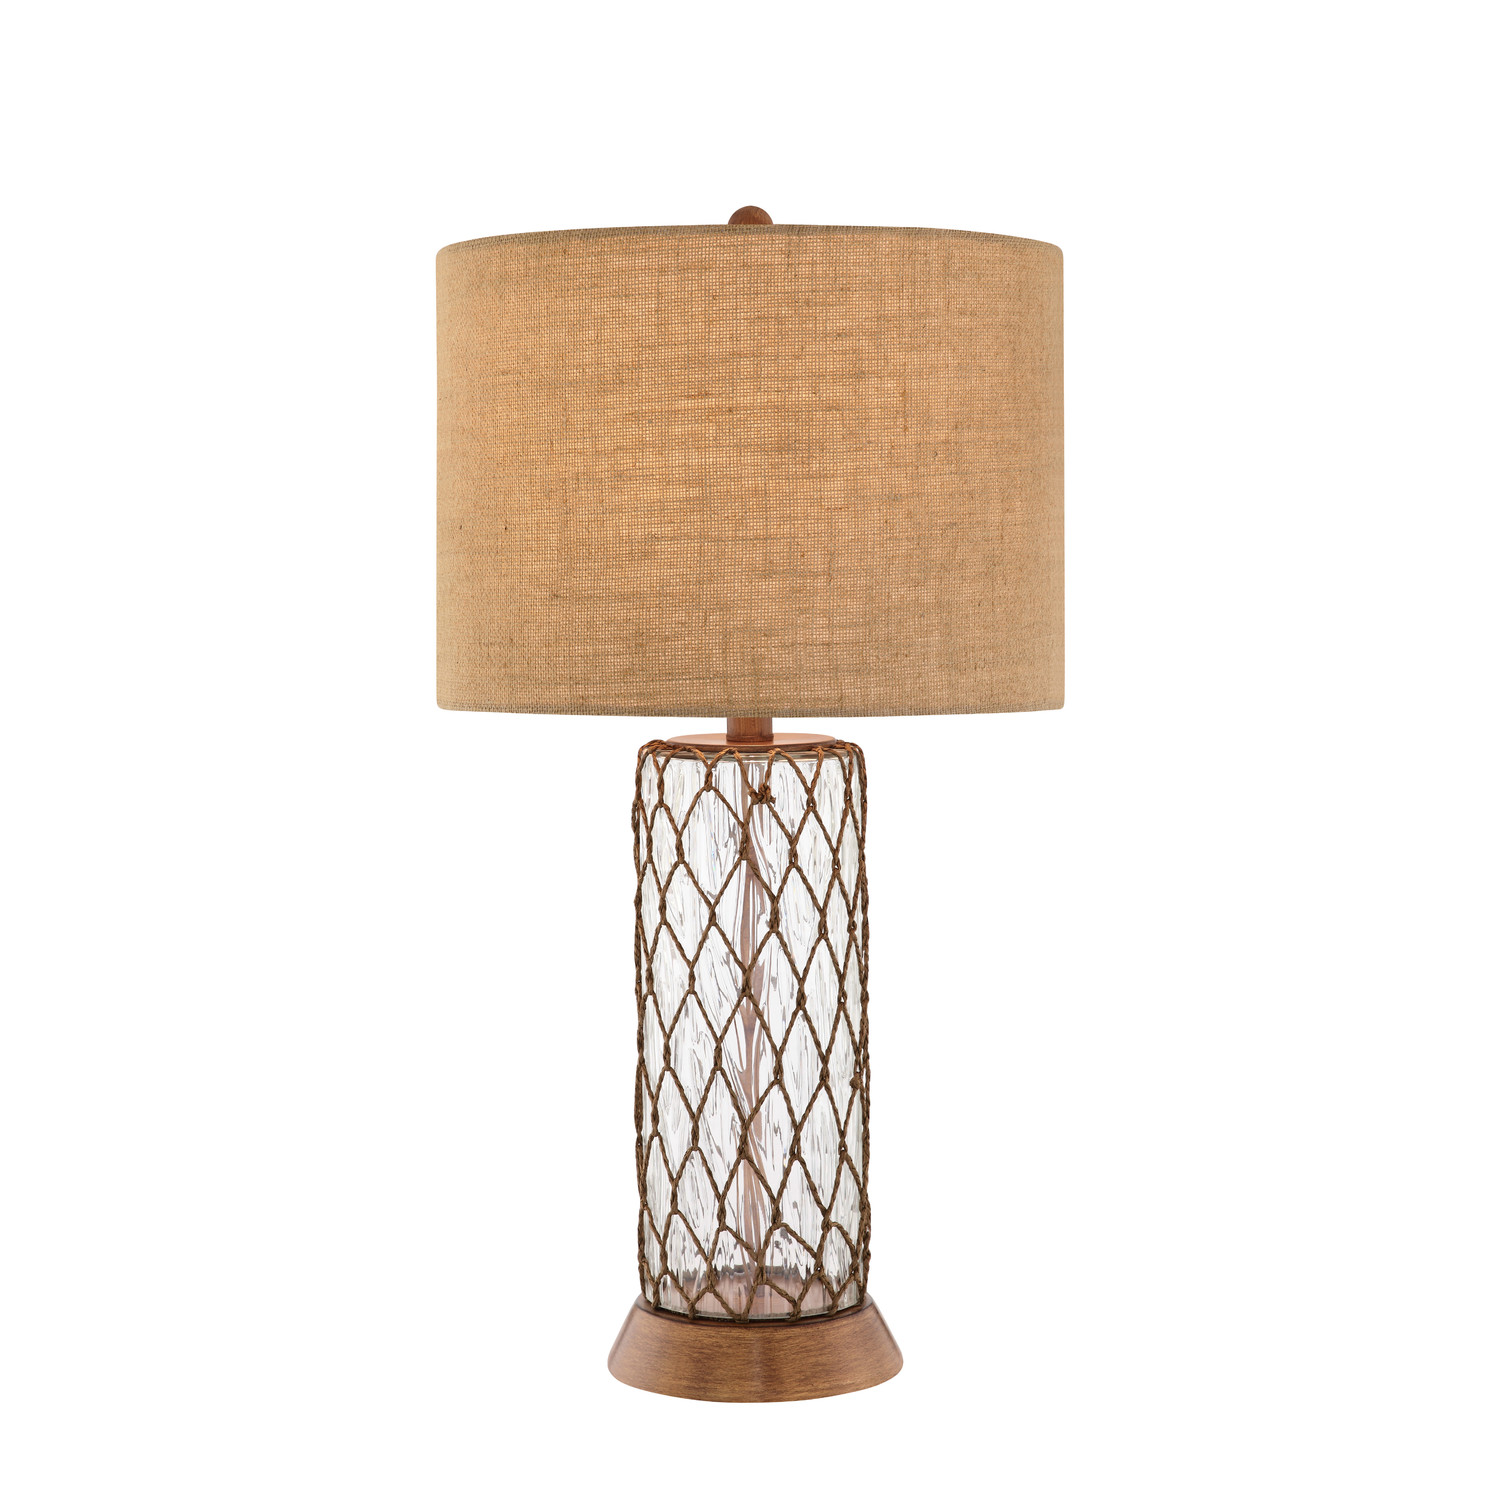 Glass And Rope 3 Way Table Lamps